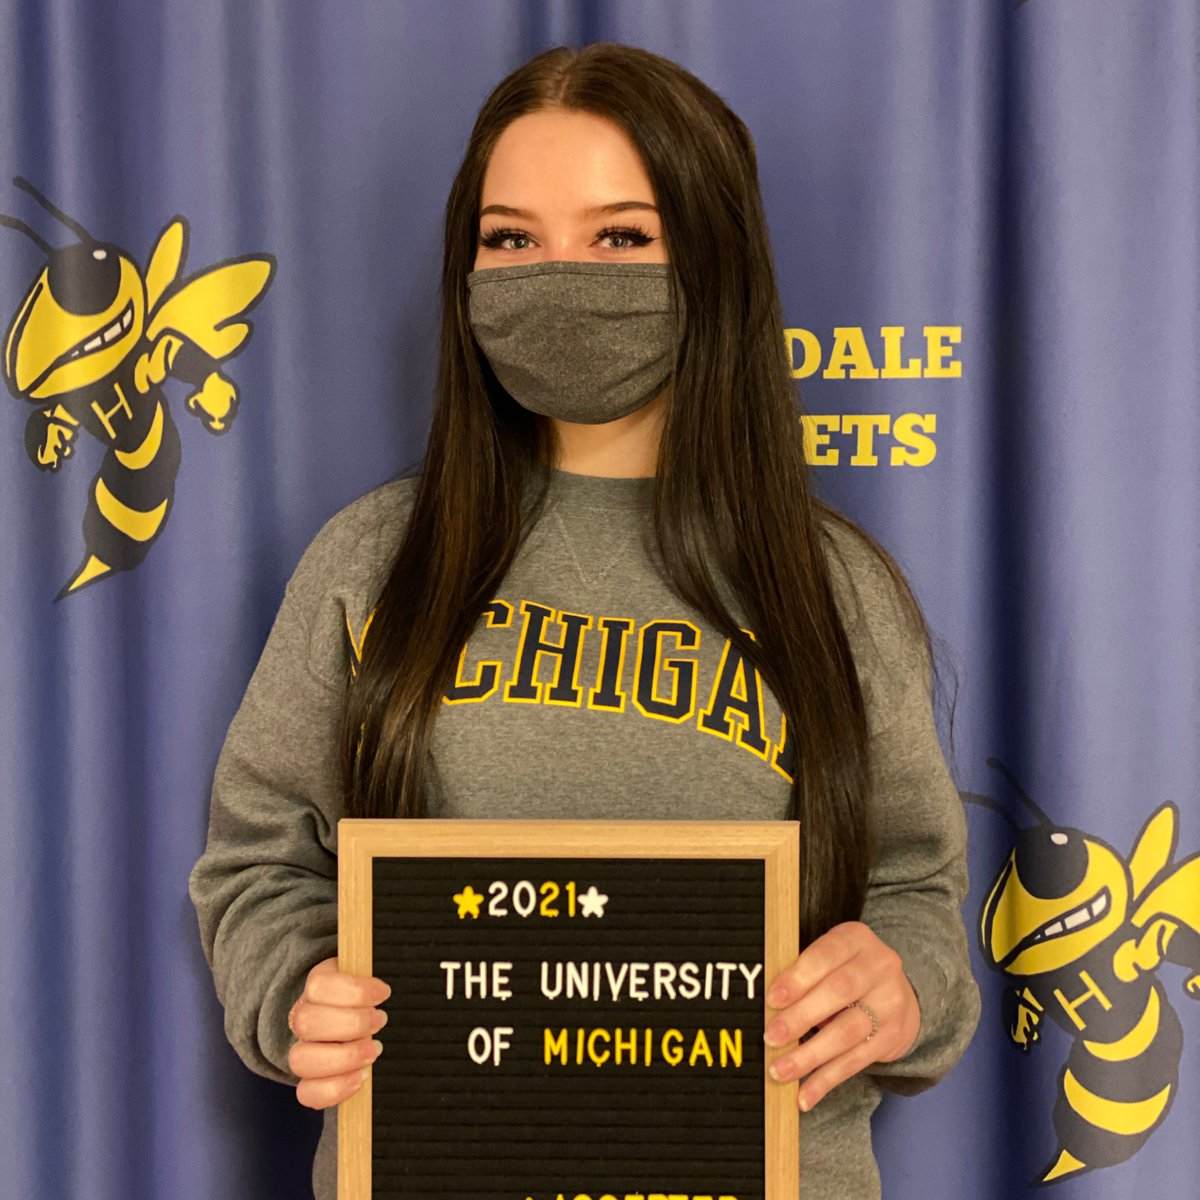 Congratulations Rebecca Galloway on your acceptance to the University of Michigan! #goblue #reachhigher #collegeboundmi